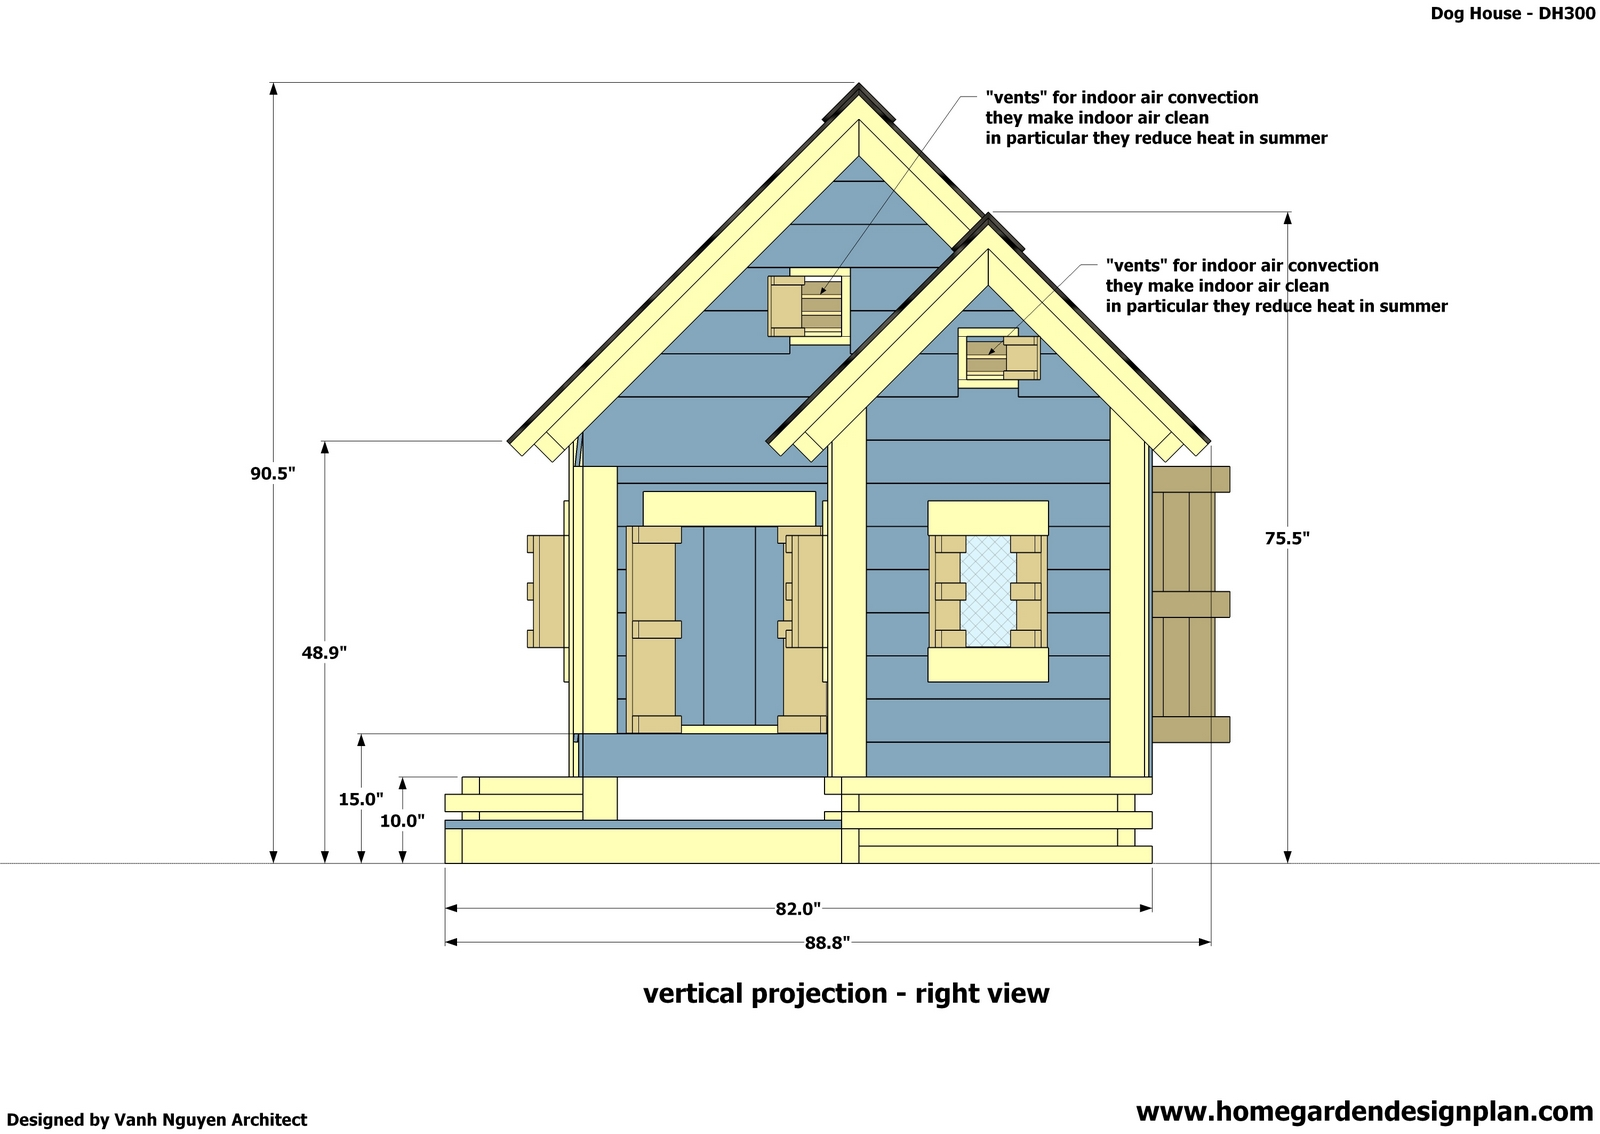 Home garden plans dh300 dog house plans free how to for Online home design plans